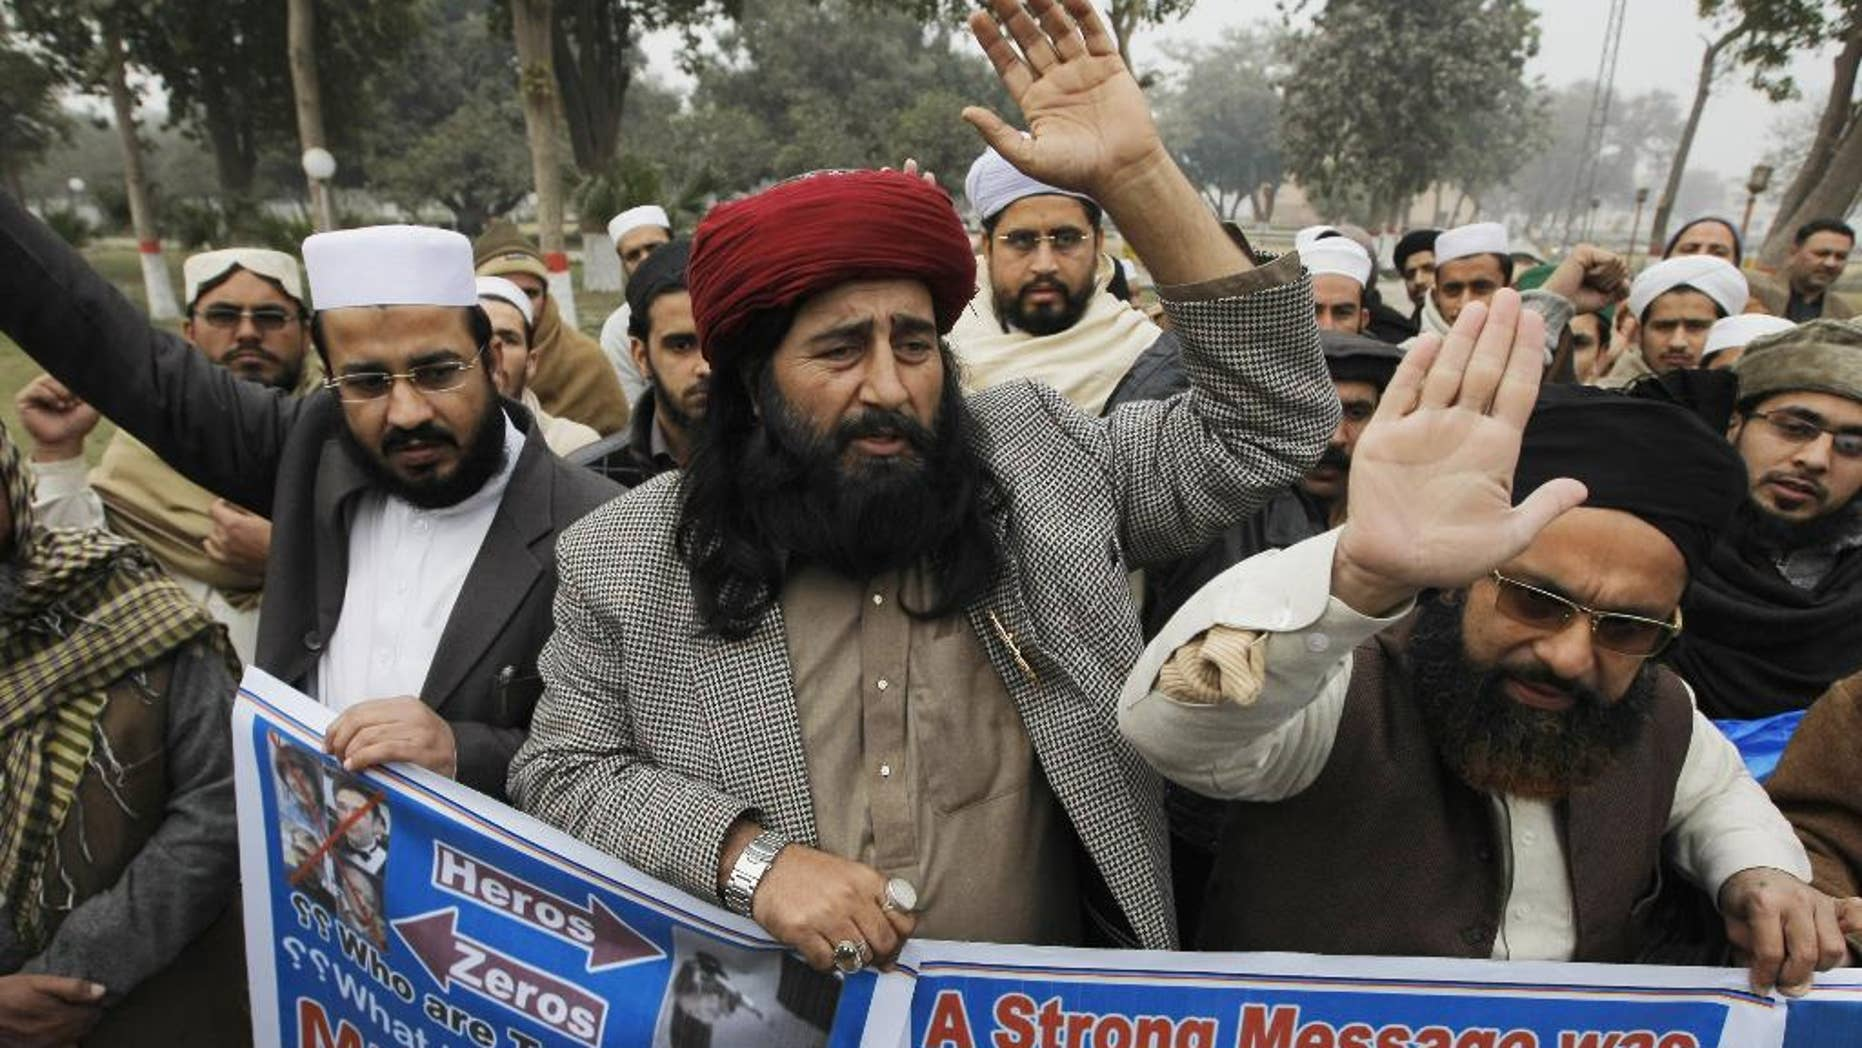 People rally to pay tribute to attackers of the satirical magazine Charlie Hedbo in Paris, Tuesday, Jan. 13, 2015 in Peshawar, Pakistan. The hardline Pakistani cleric in the country's northwest has led a prayer service in honor of the two brothers who attacked the satirical magazine Charlie Hedbo in Paris. (AP Photo/Mohammad Sajjad)